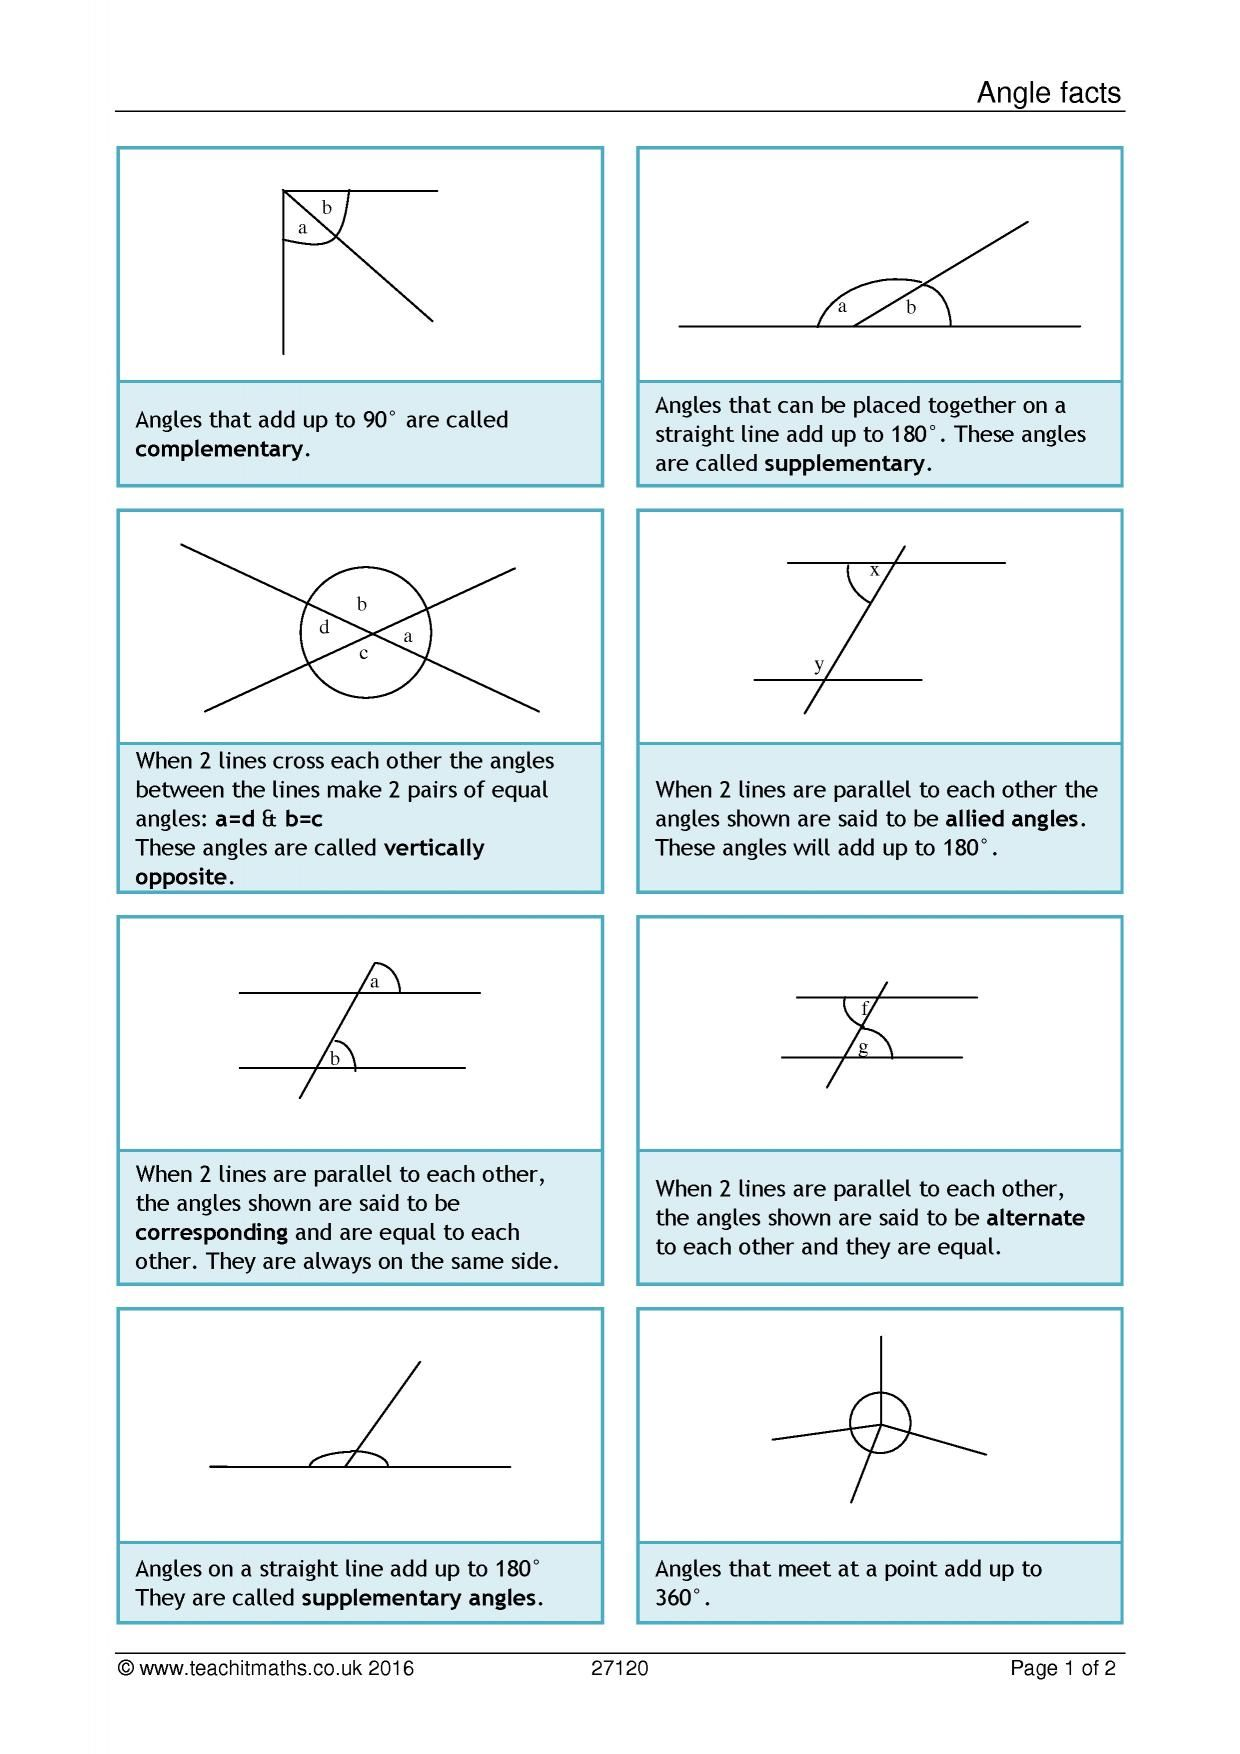 Angle Facts Angles Worksheet Relationship Worksheets Angle Relationships Worksheet [ 1754 x 1240 Pixel ]